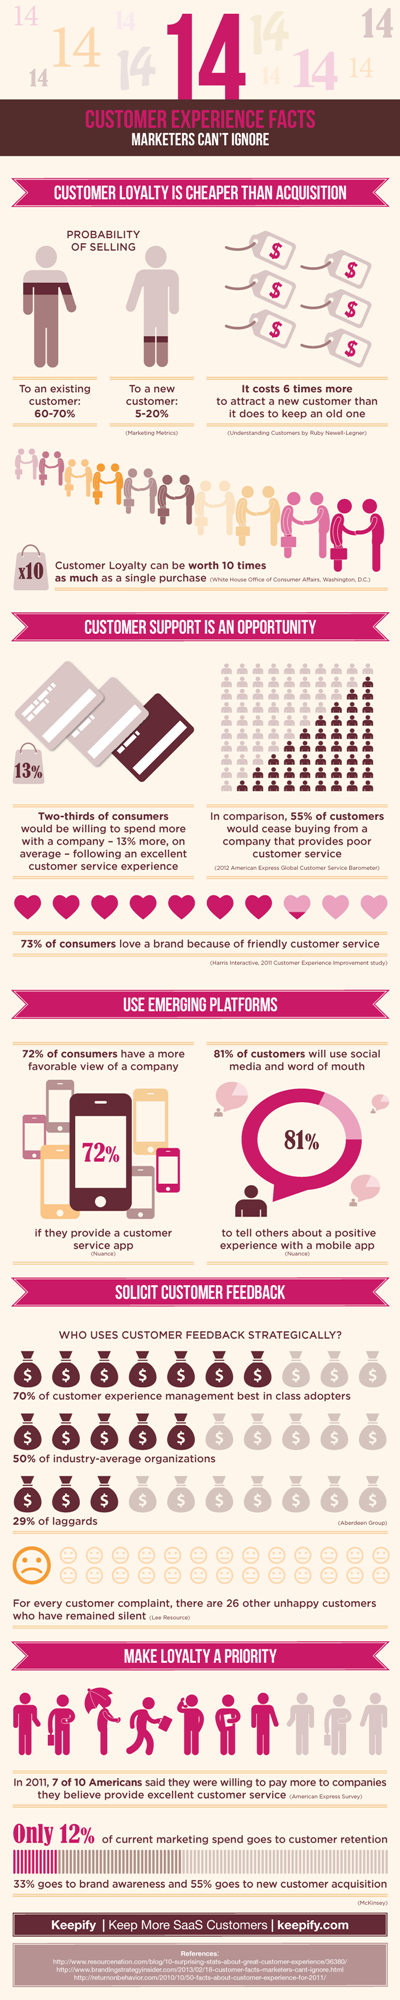 Two More Customer Experience Facts and Suggestions You Can't Ignore [INFOGRAPHIC]